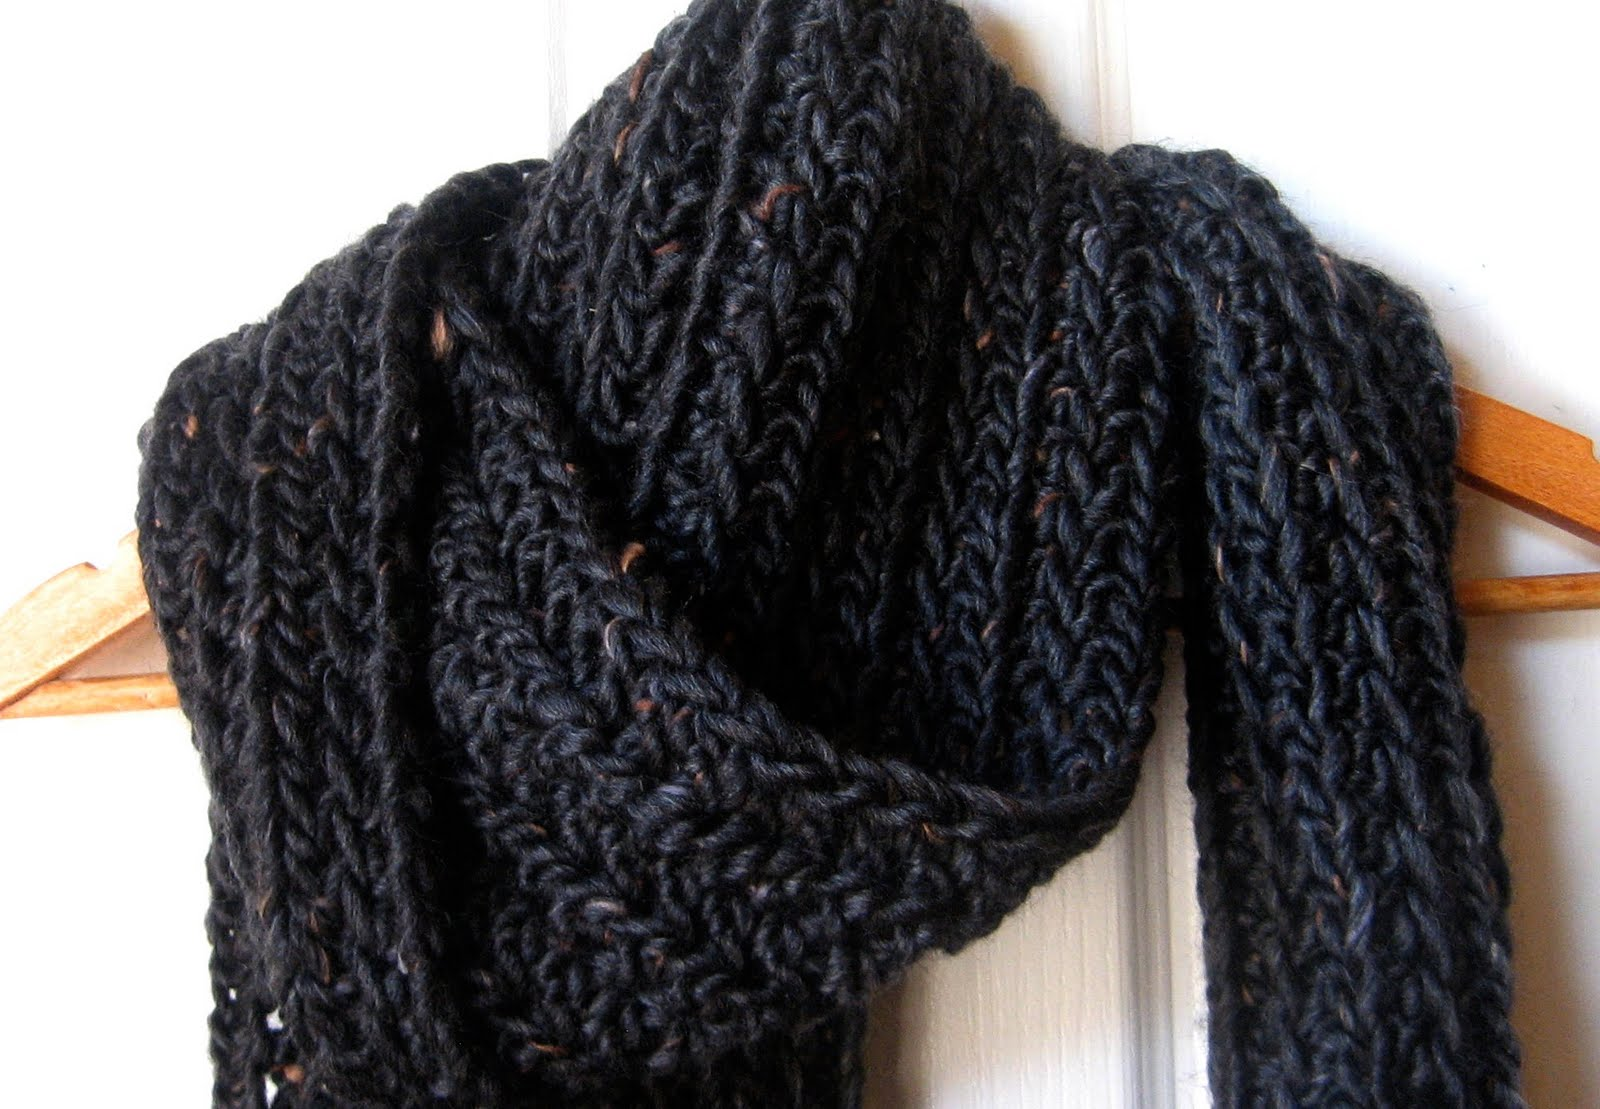 Crochet Scarf Pattern With Pictures : Mel P Designs: Free Crochet Scarf Pattern